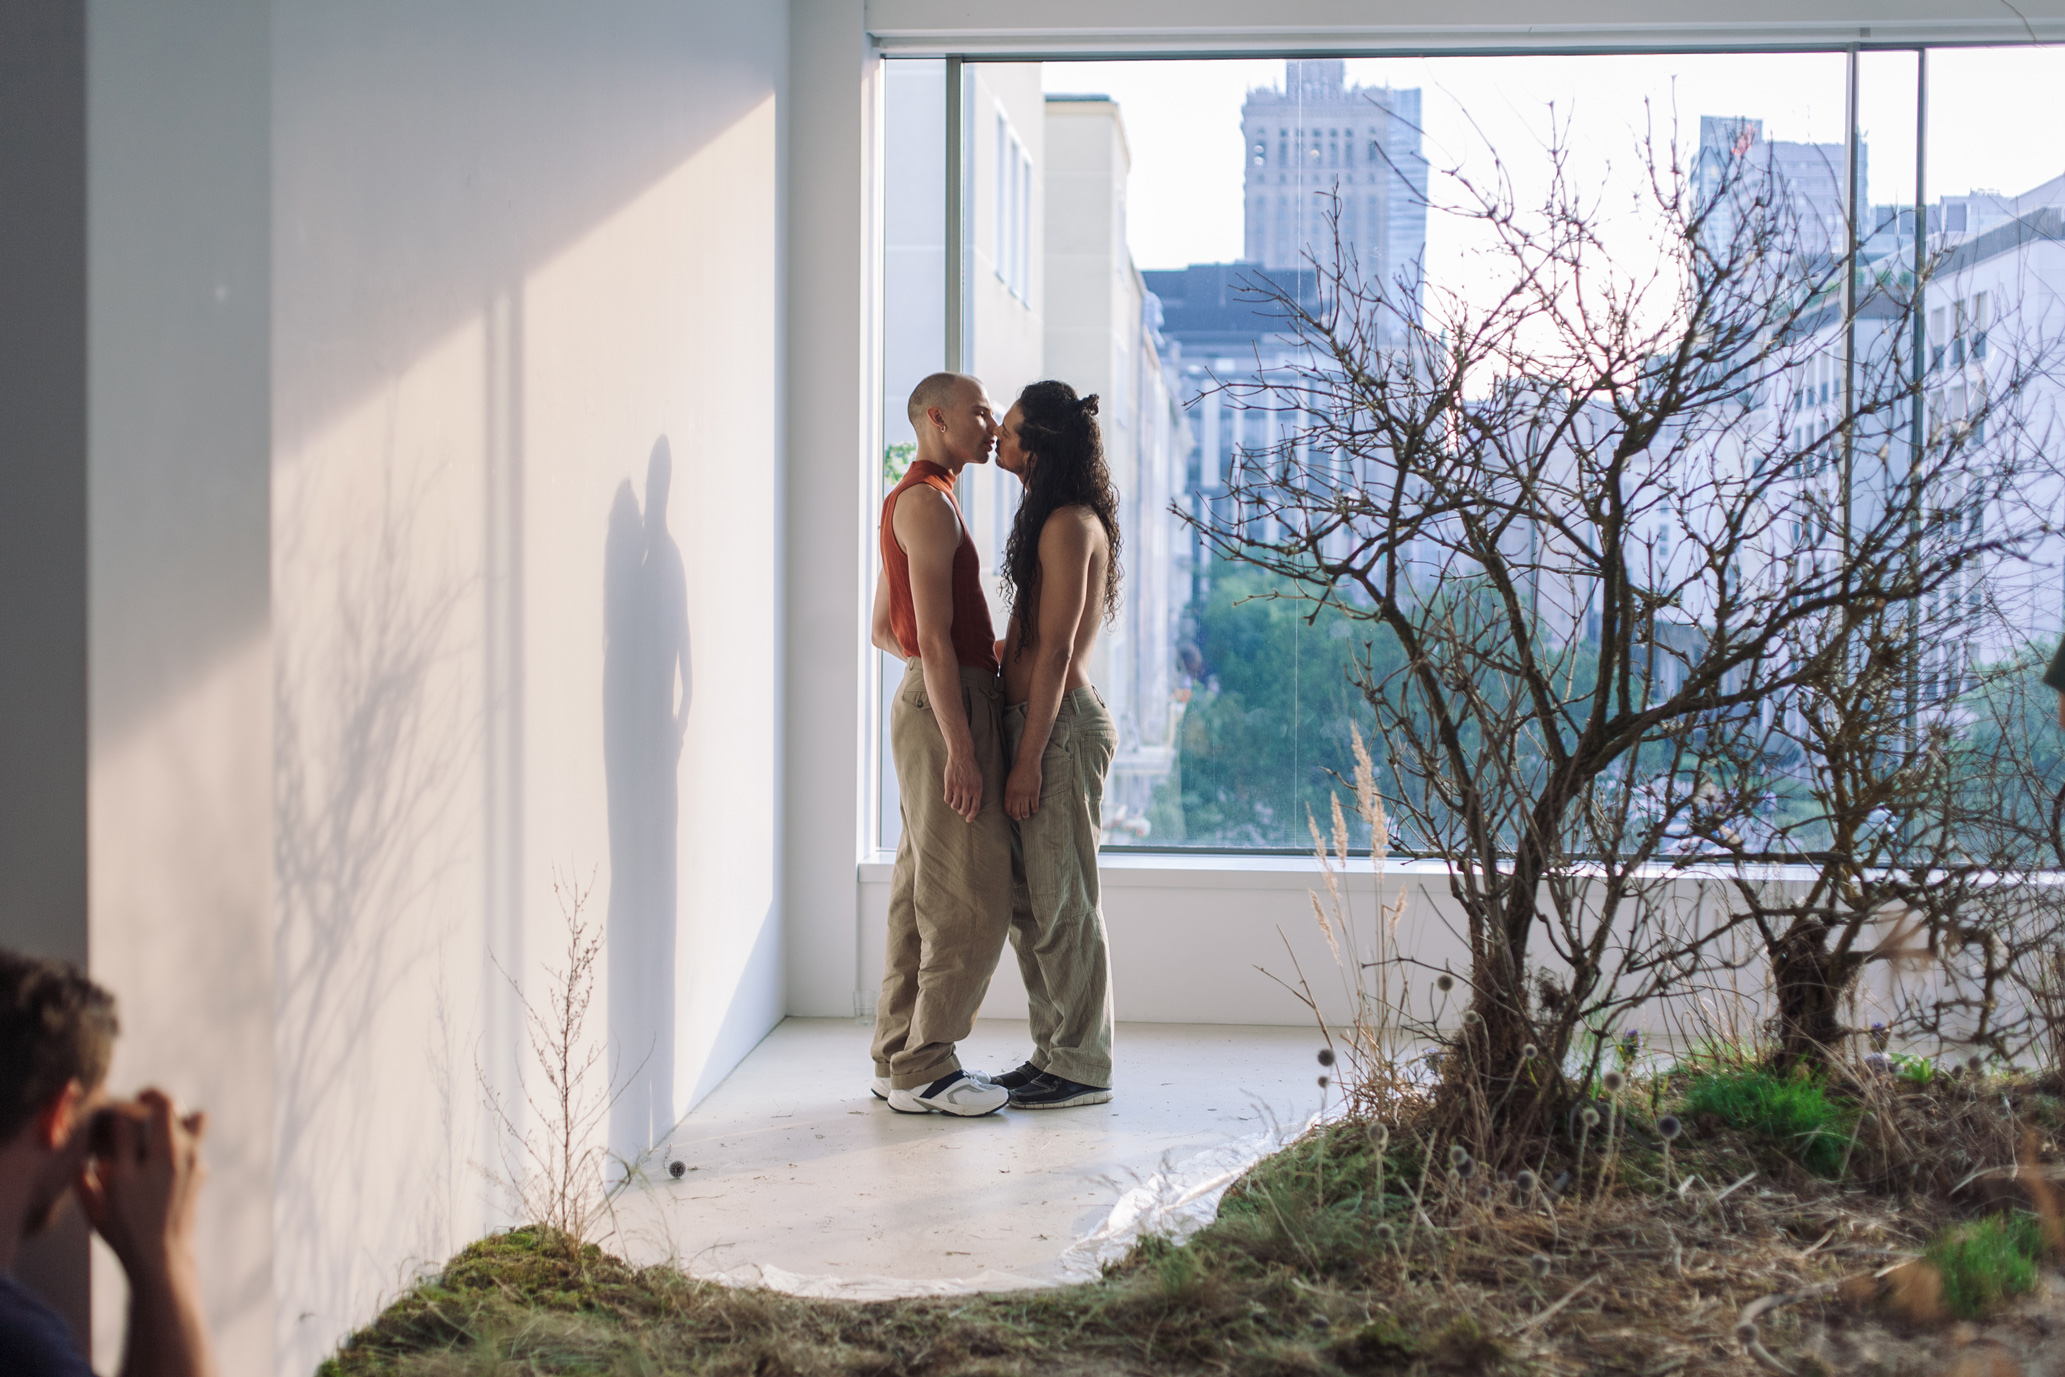 <i>Nim zakwitnie tysiąc róż (z Warszawą w tle)</i> [<i>Until a Thousand Roses Bloom (with Warsaw in the Background)</i>], Alex Baczyński-Jenkins's performance, Warsaw, 2018, photo: K. Zajączkowska. Courtesy: artist & Foksal Gallery Foundation